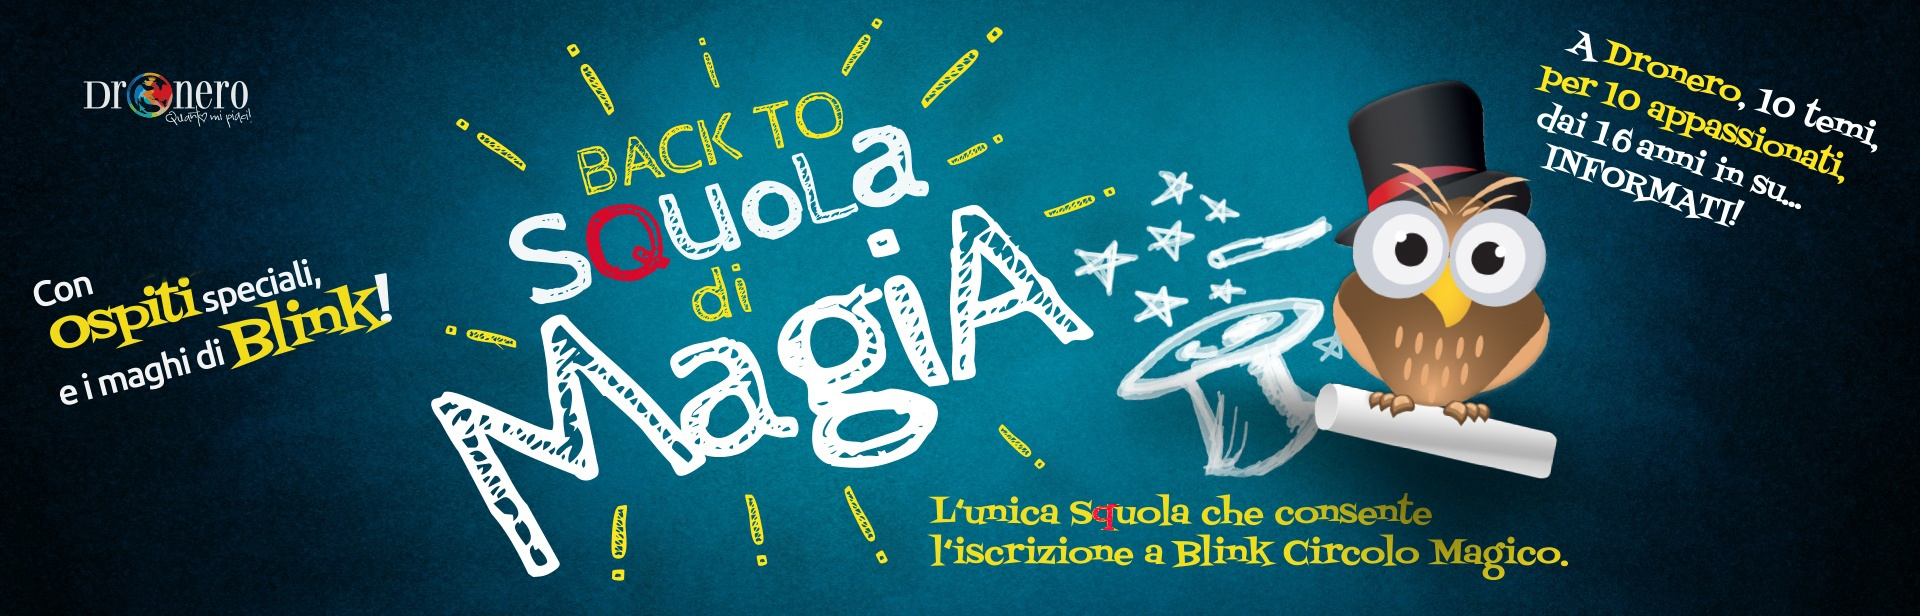 """Back to """"Squola di Magia"""" BLINK"""